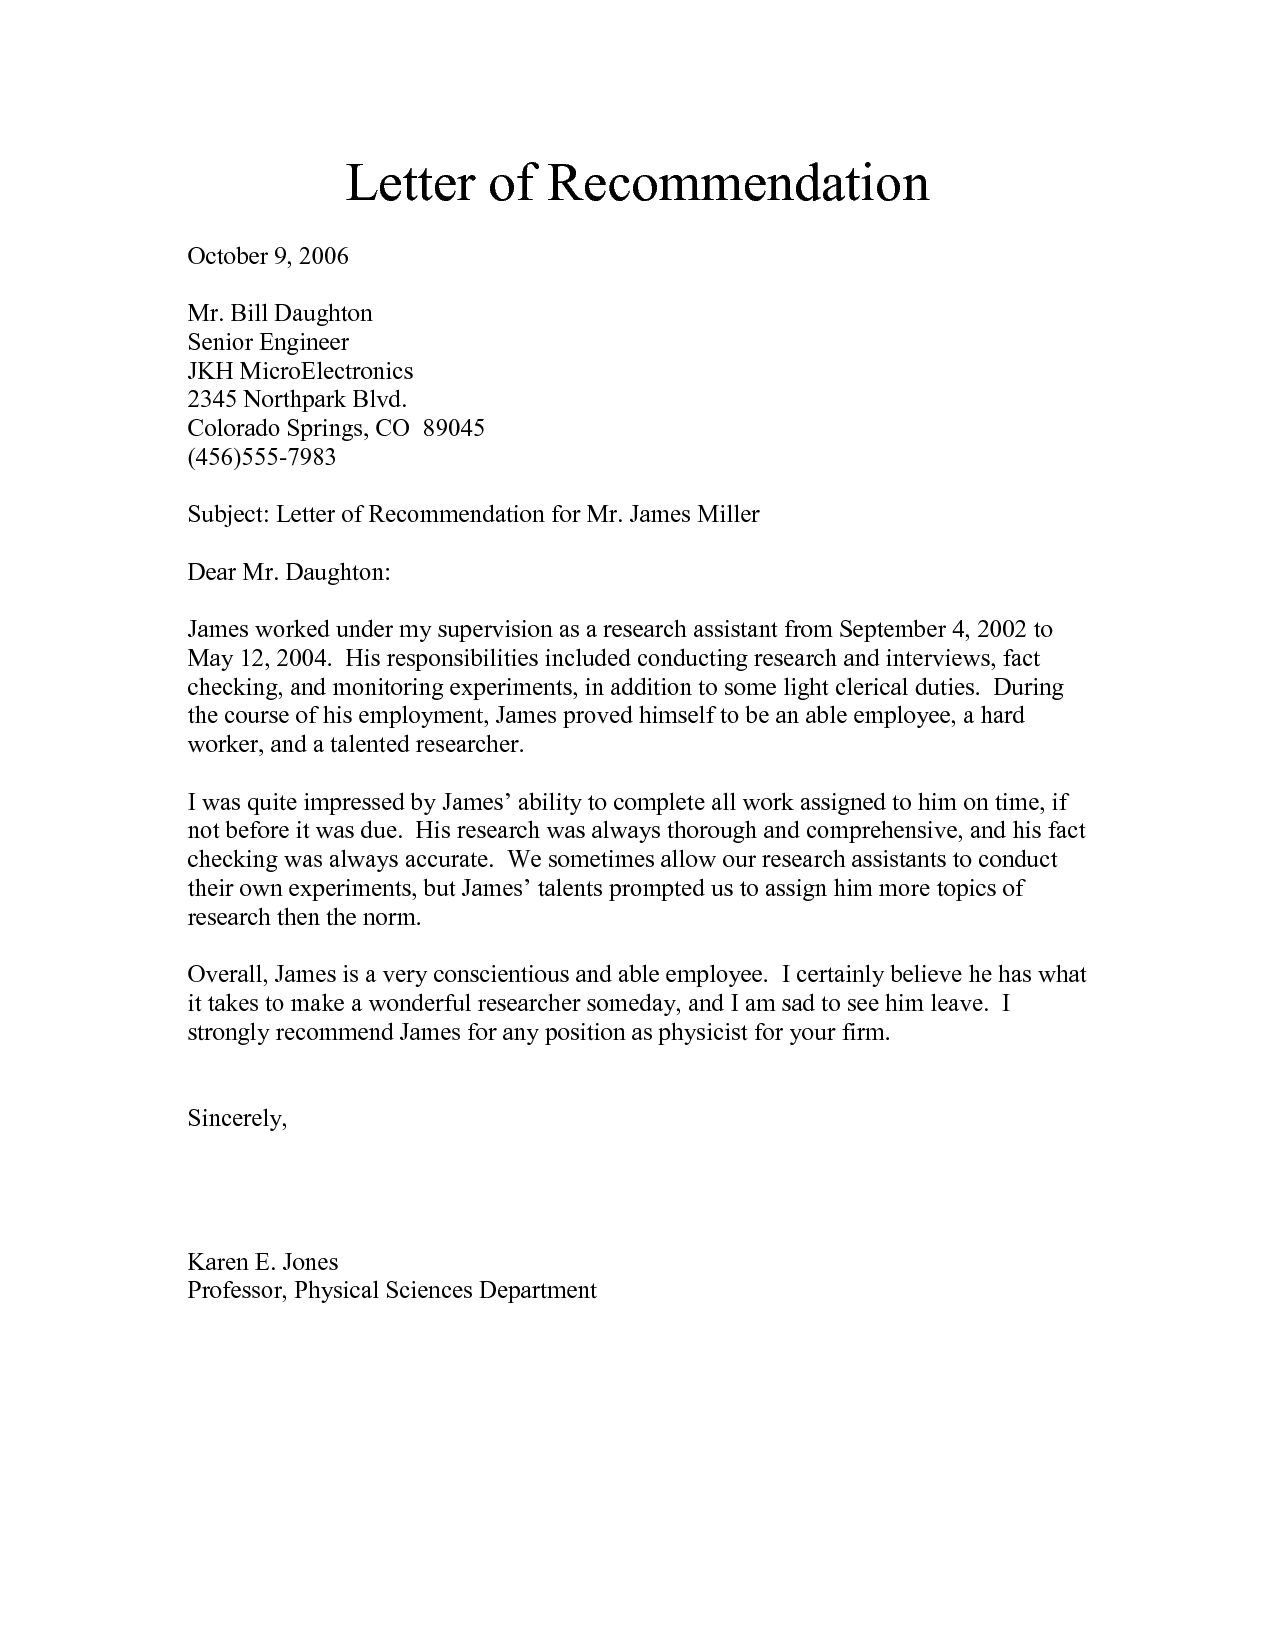 Army Computer Engineer Cover Letter Army Letter Of Recommendation Exampleletter Of Recommendation